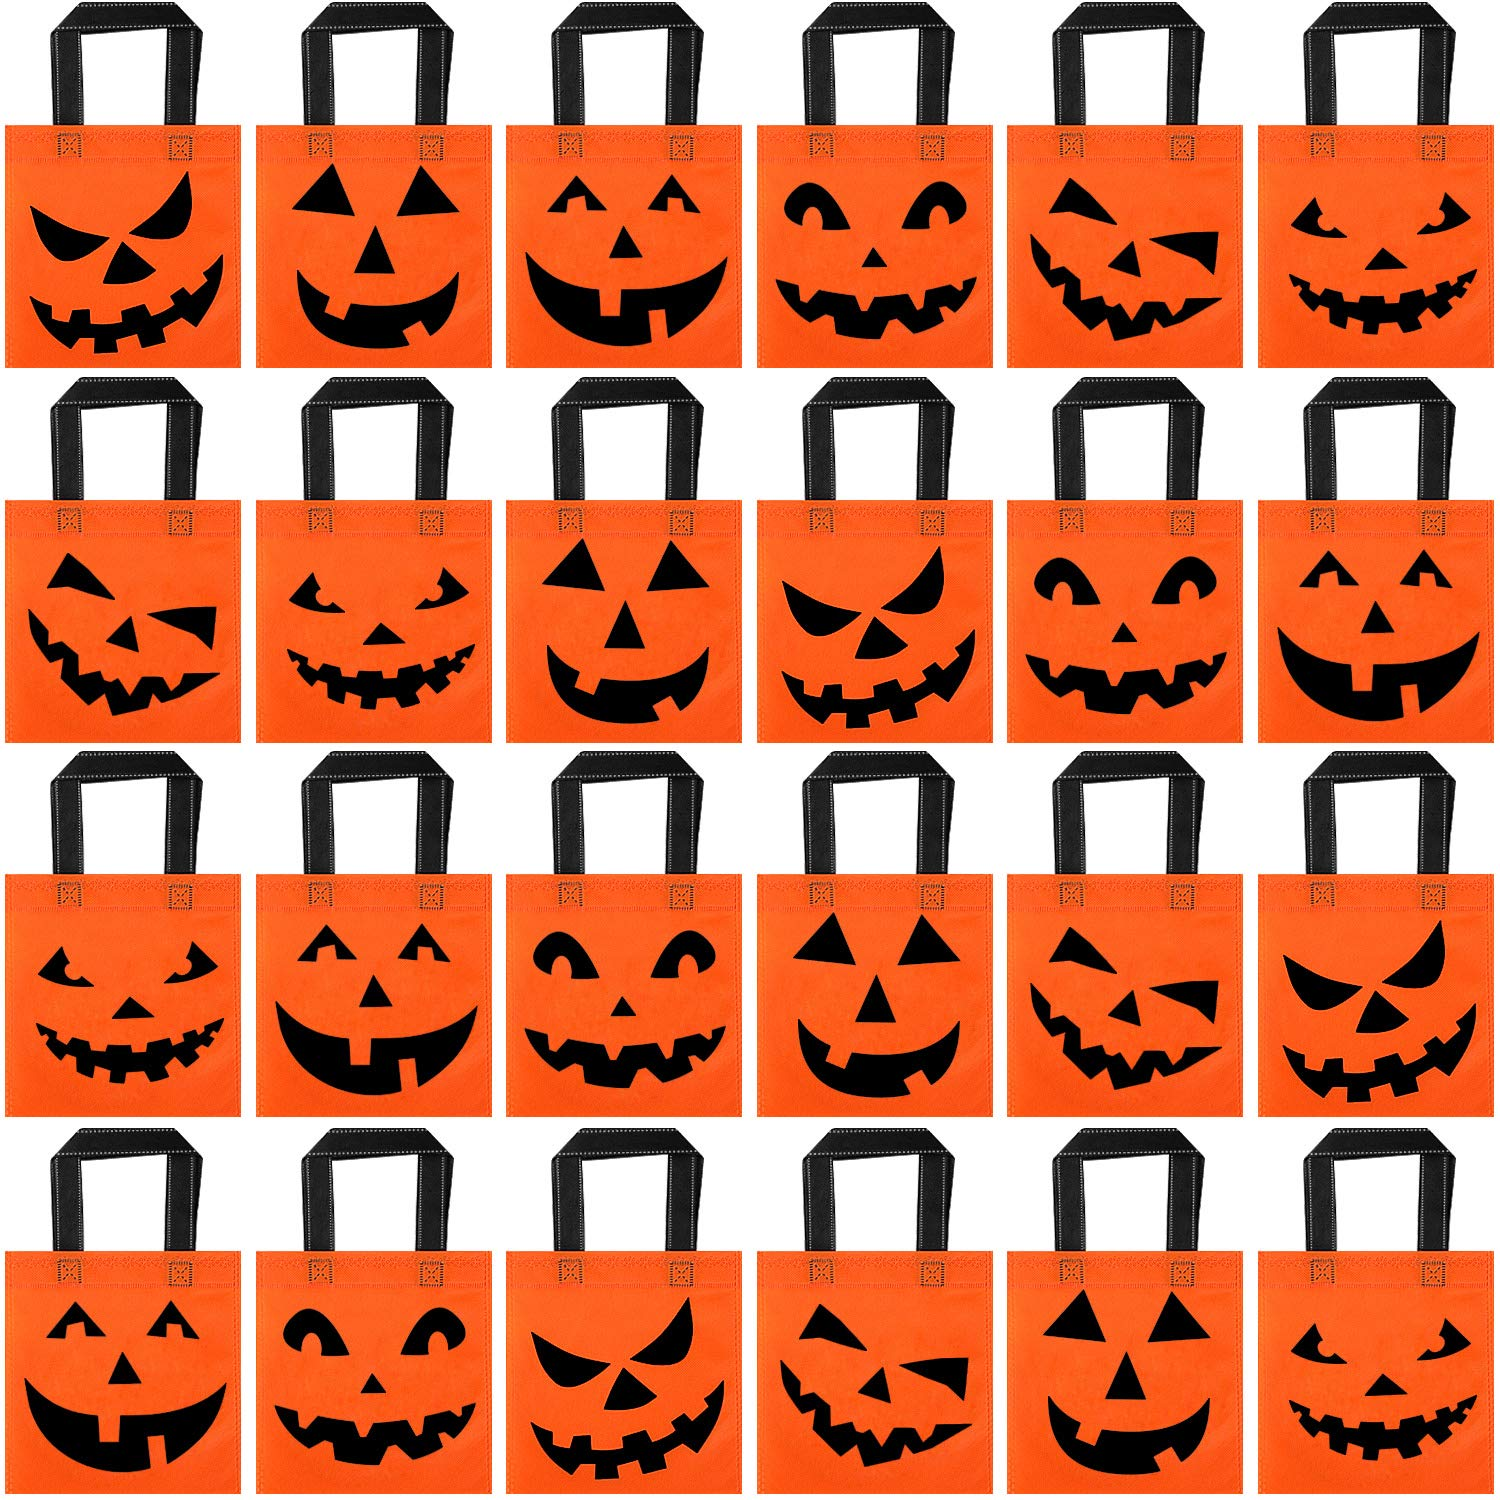 24 Pieces Halloween Jack-o-Lantern Pumpkin Tote Bags Halloween Non-Woven Candy Bags Trick or Treat...